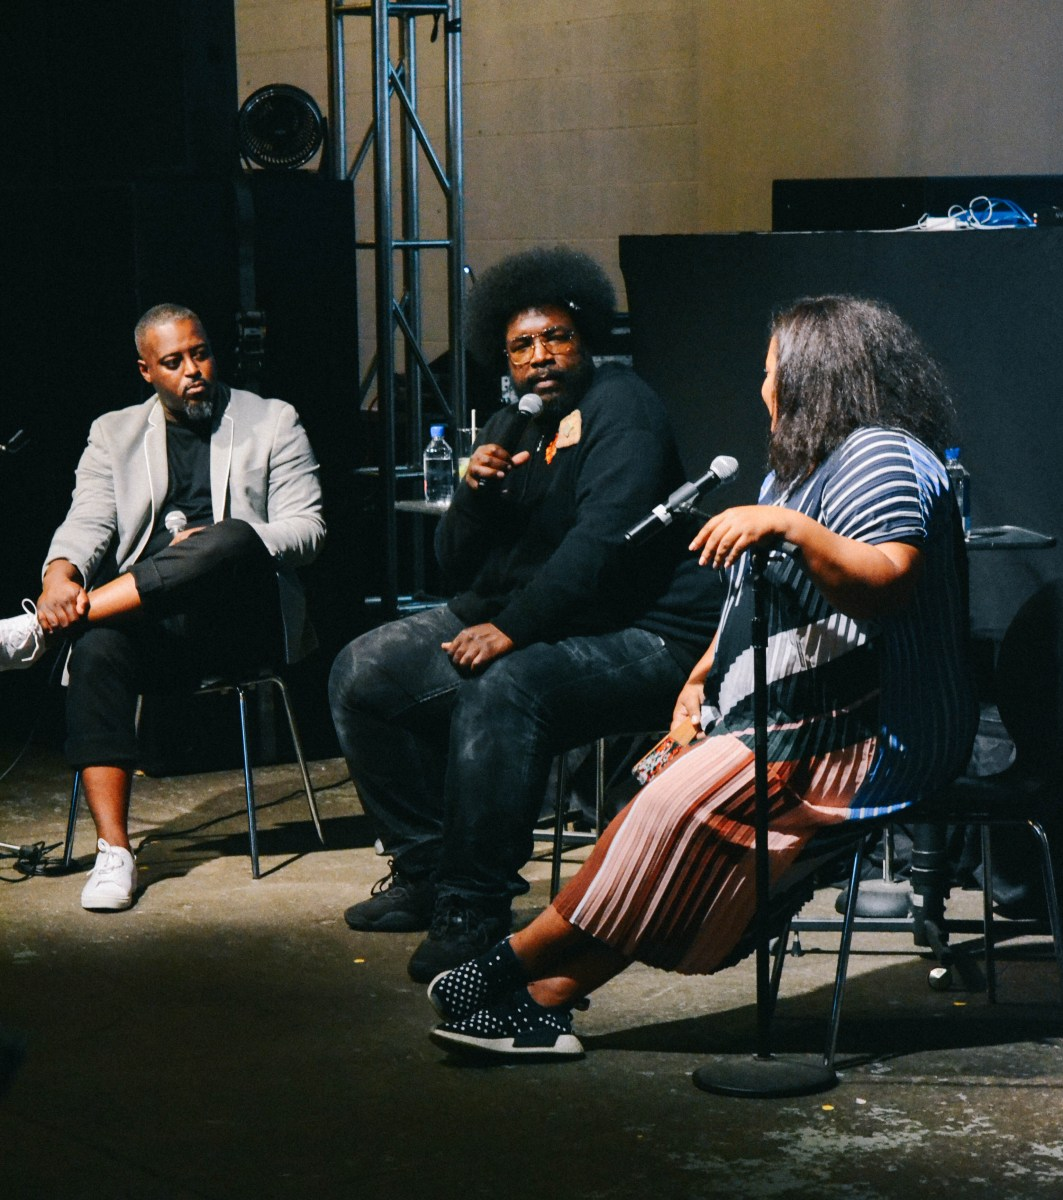 My Time at the Intersection Series: The Science of Food and Music with Questlove, Chef Max Hardy, and dream hampton